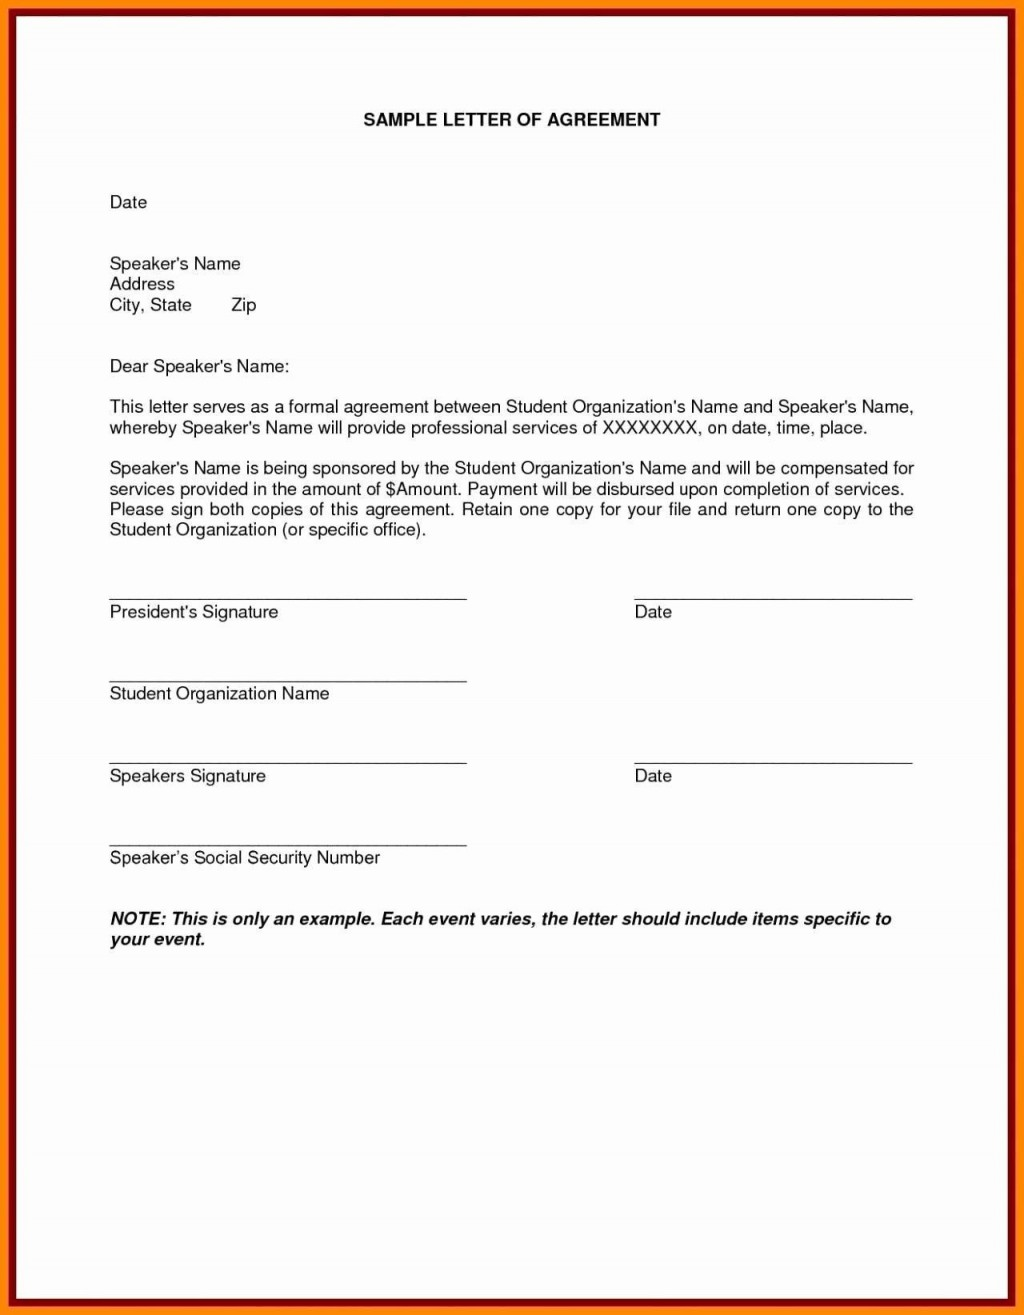 001 Awful Sample Letter Of Agreement Template Image  For A In Project PrepareLarge